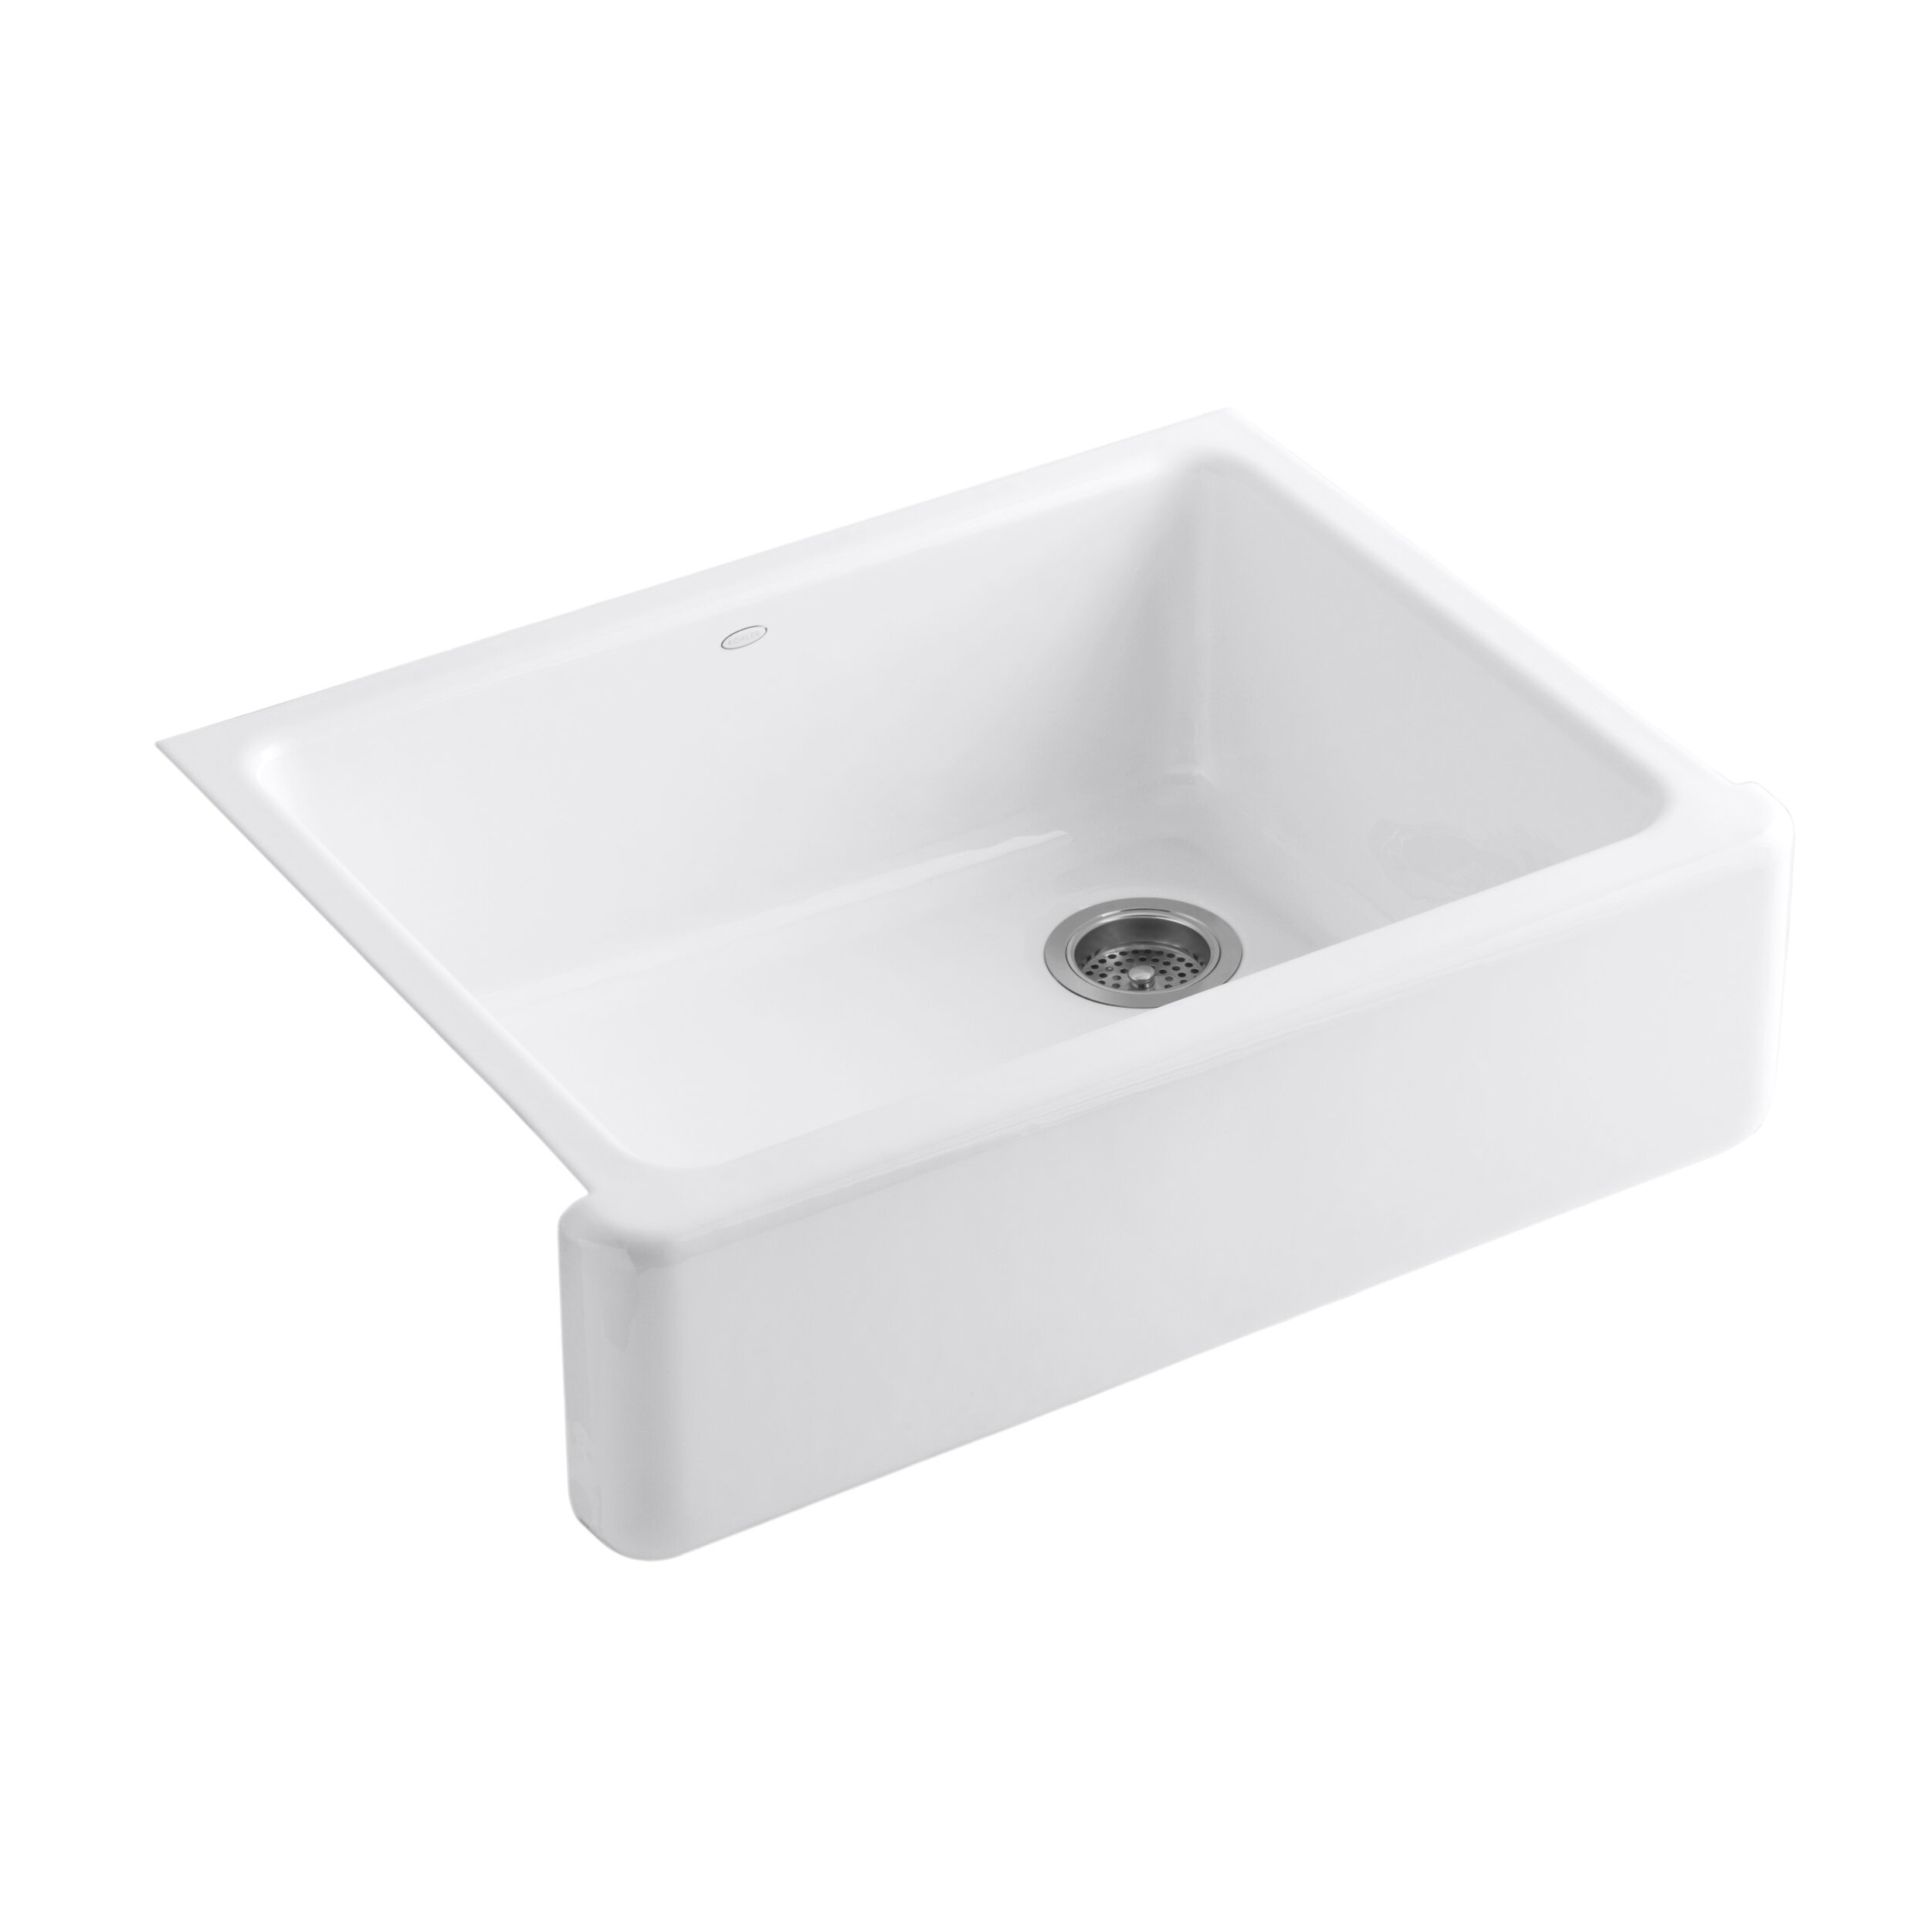 Whitehaven Self Trimming   X   Undermount Single Bowl Kitchen Sink